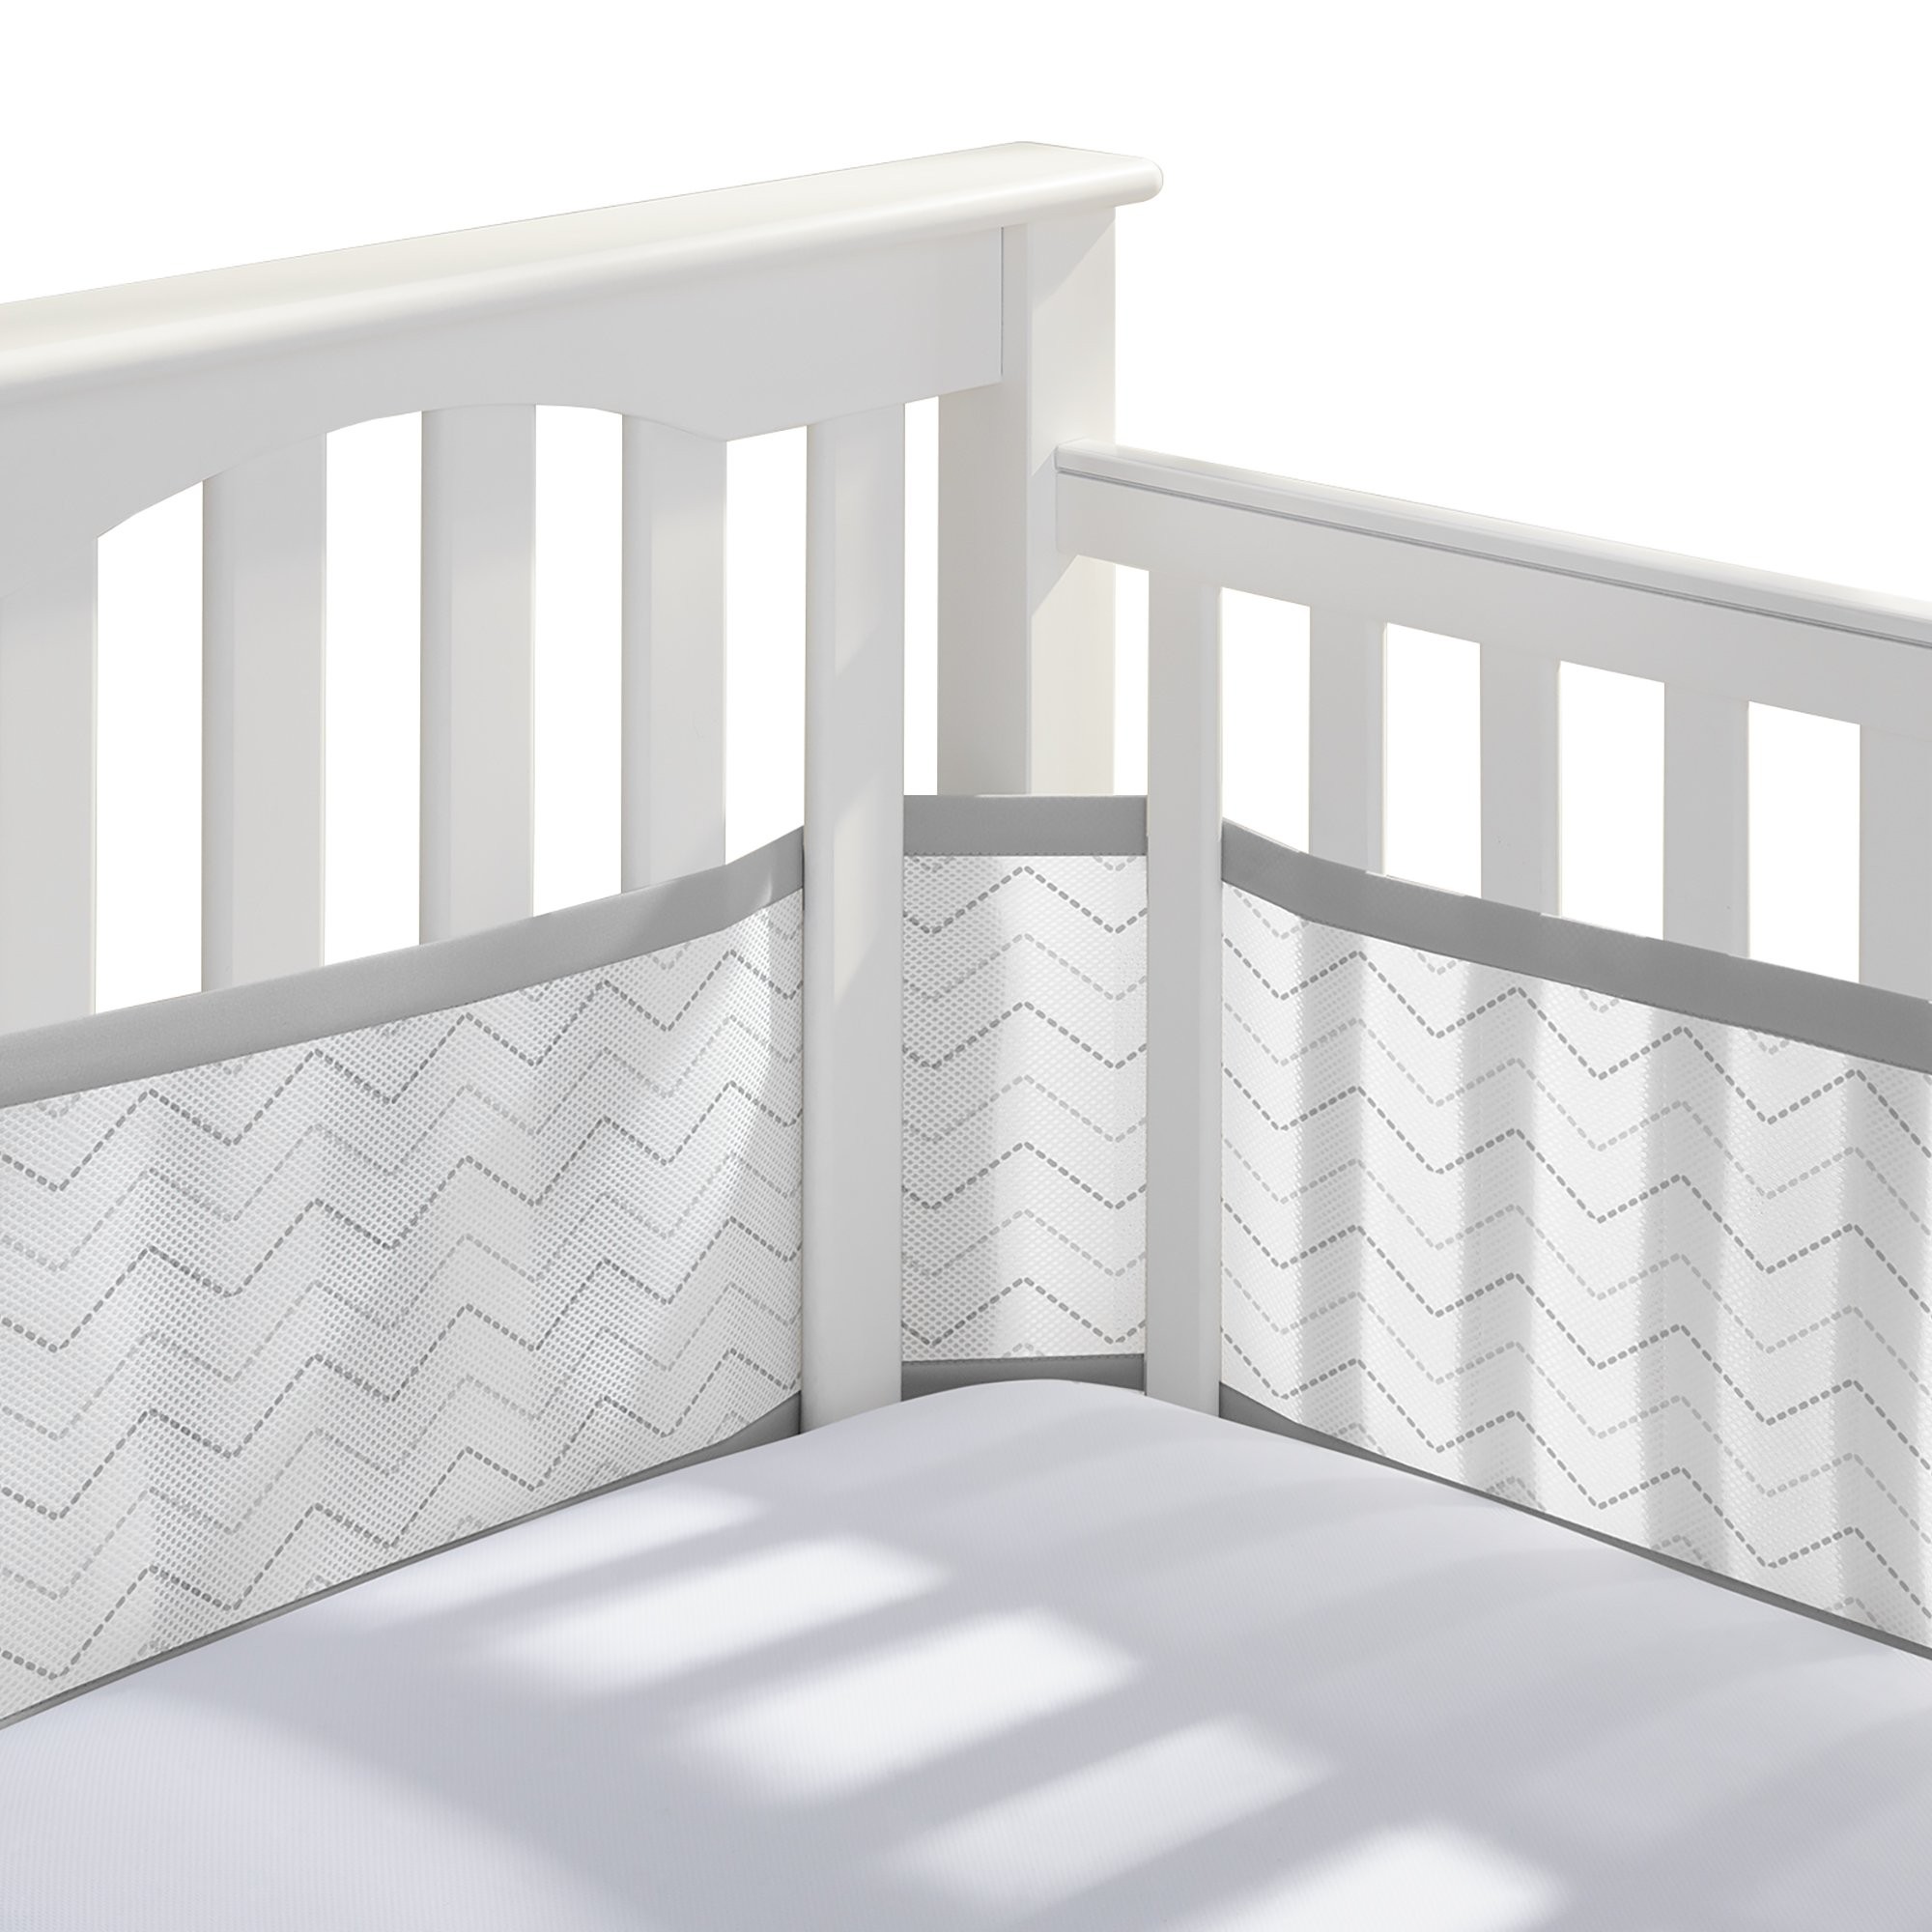 BreathableBaby | Breathable Mesh Printed Crib Liner | Doctor Endorsed | Helps Prevent Arms and Legs from Getting Stuck Between Crib Slats | Independently Tested for Safety | Gray Chevron